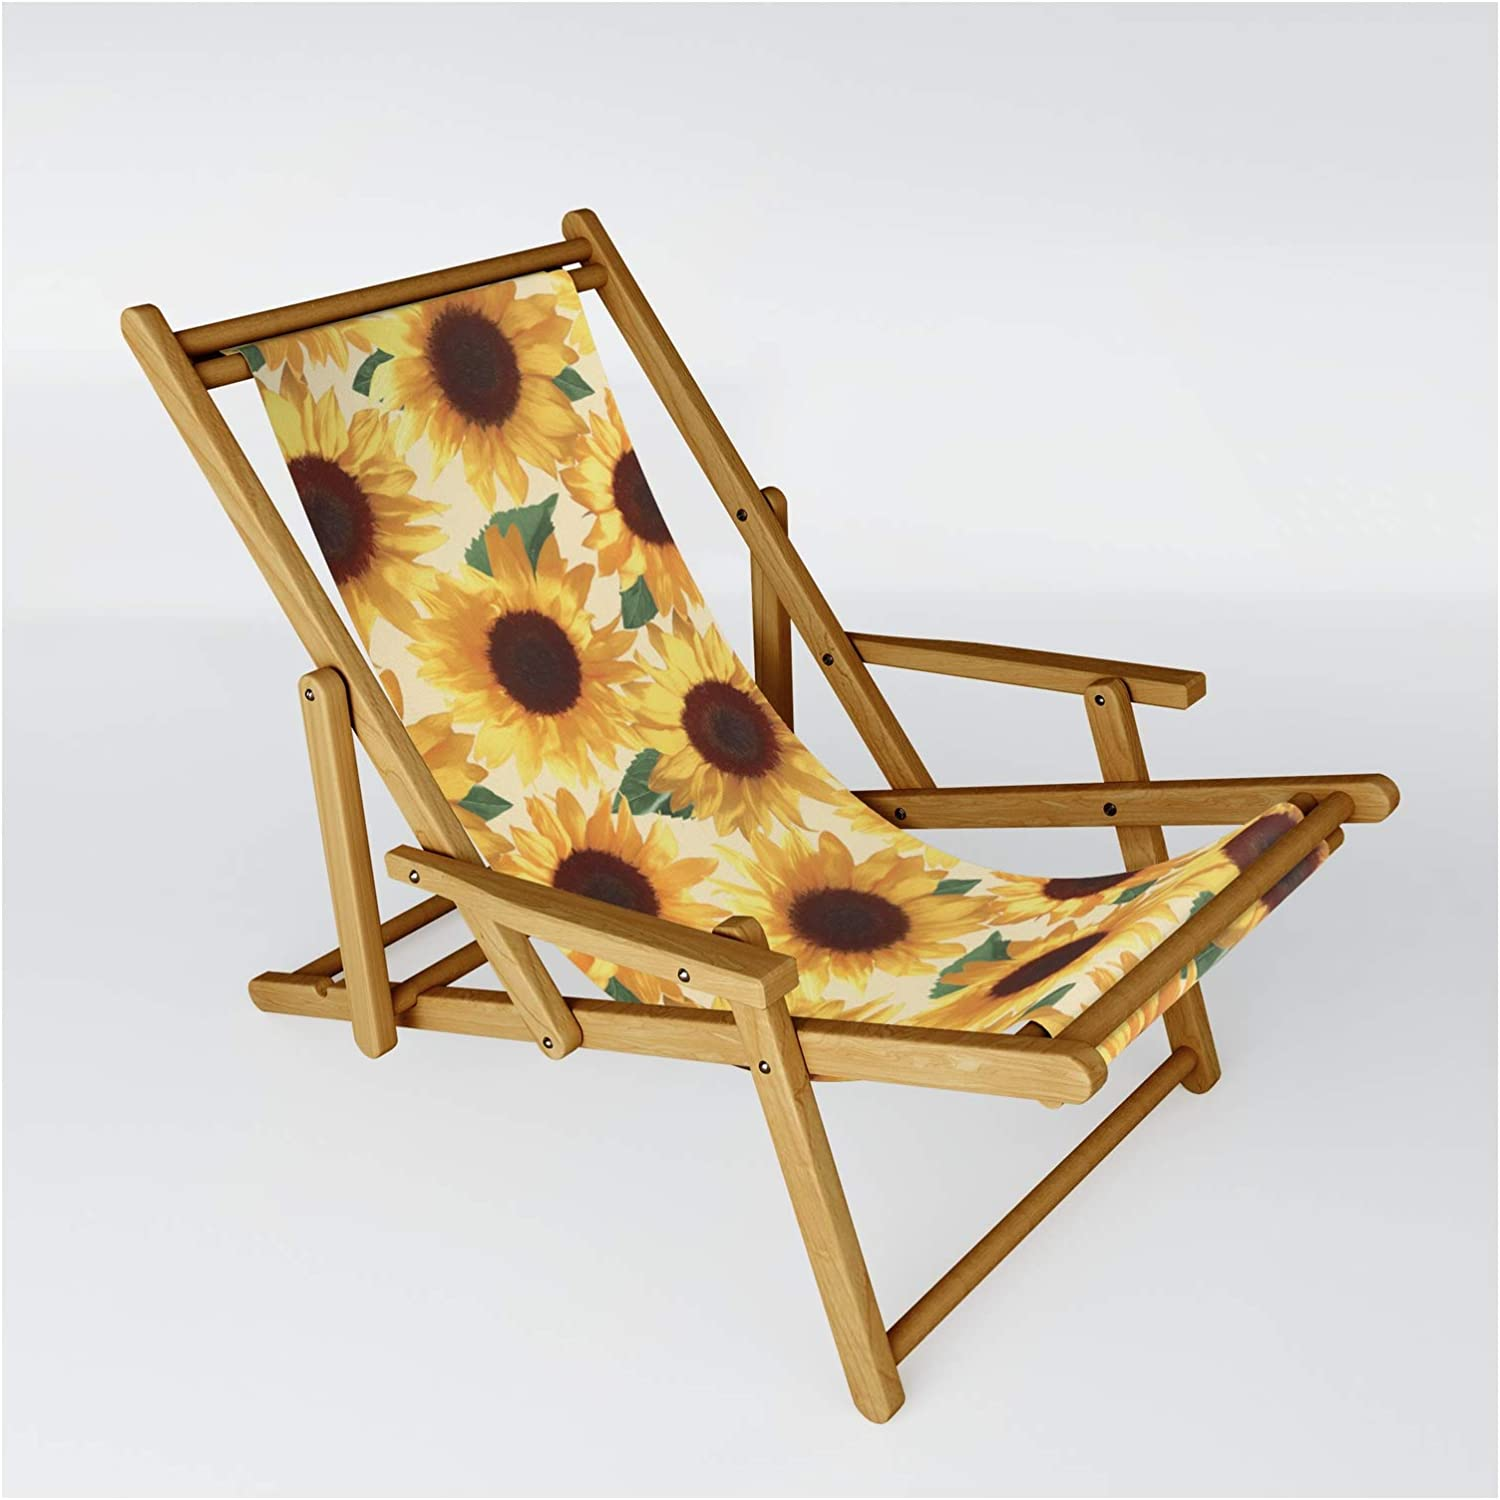 Minneapolis Mall Society6 Happy Yellow Sunflowers by Micklyn on Chair gift One Sling -